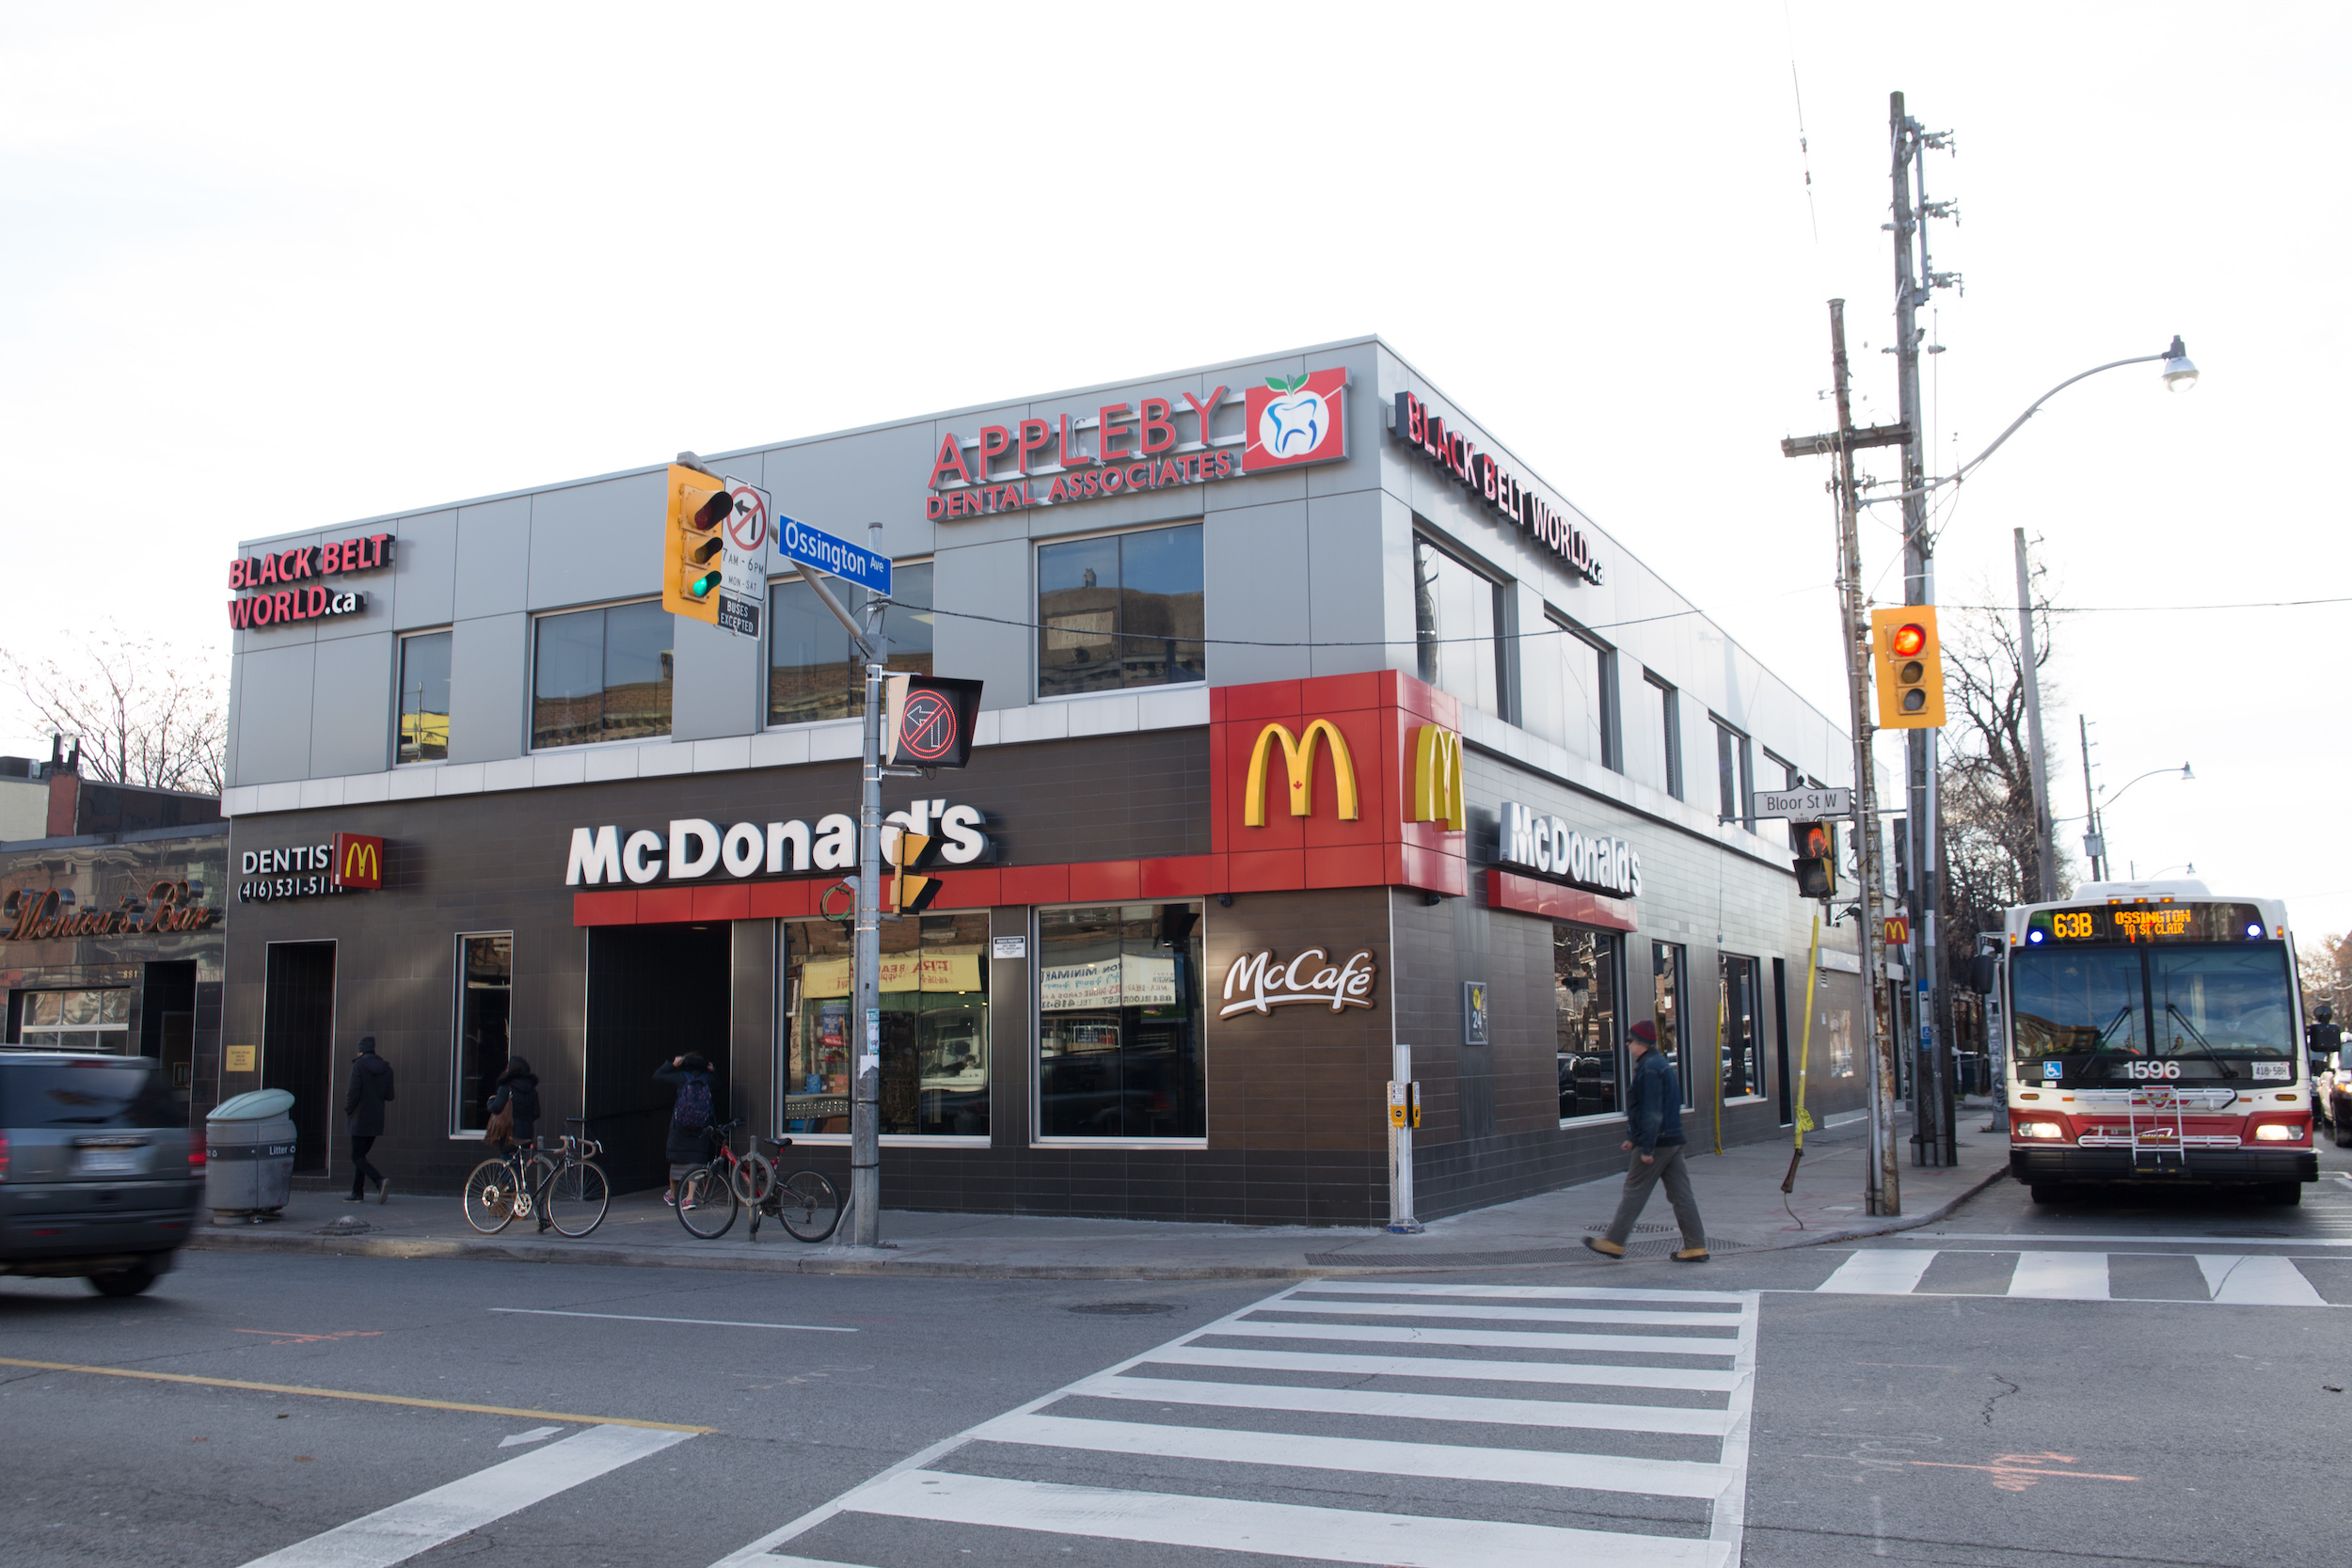 Streetview of commercial property with tenants like McDonalds